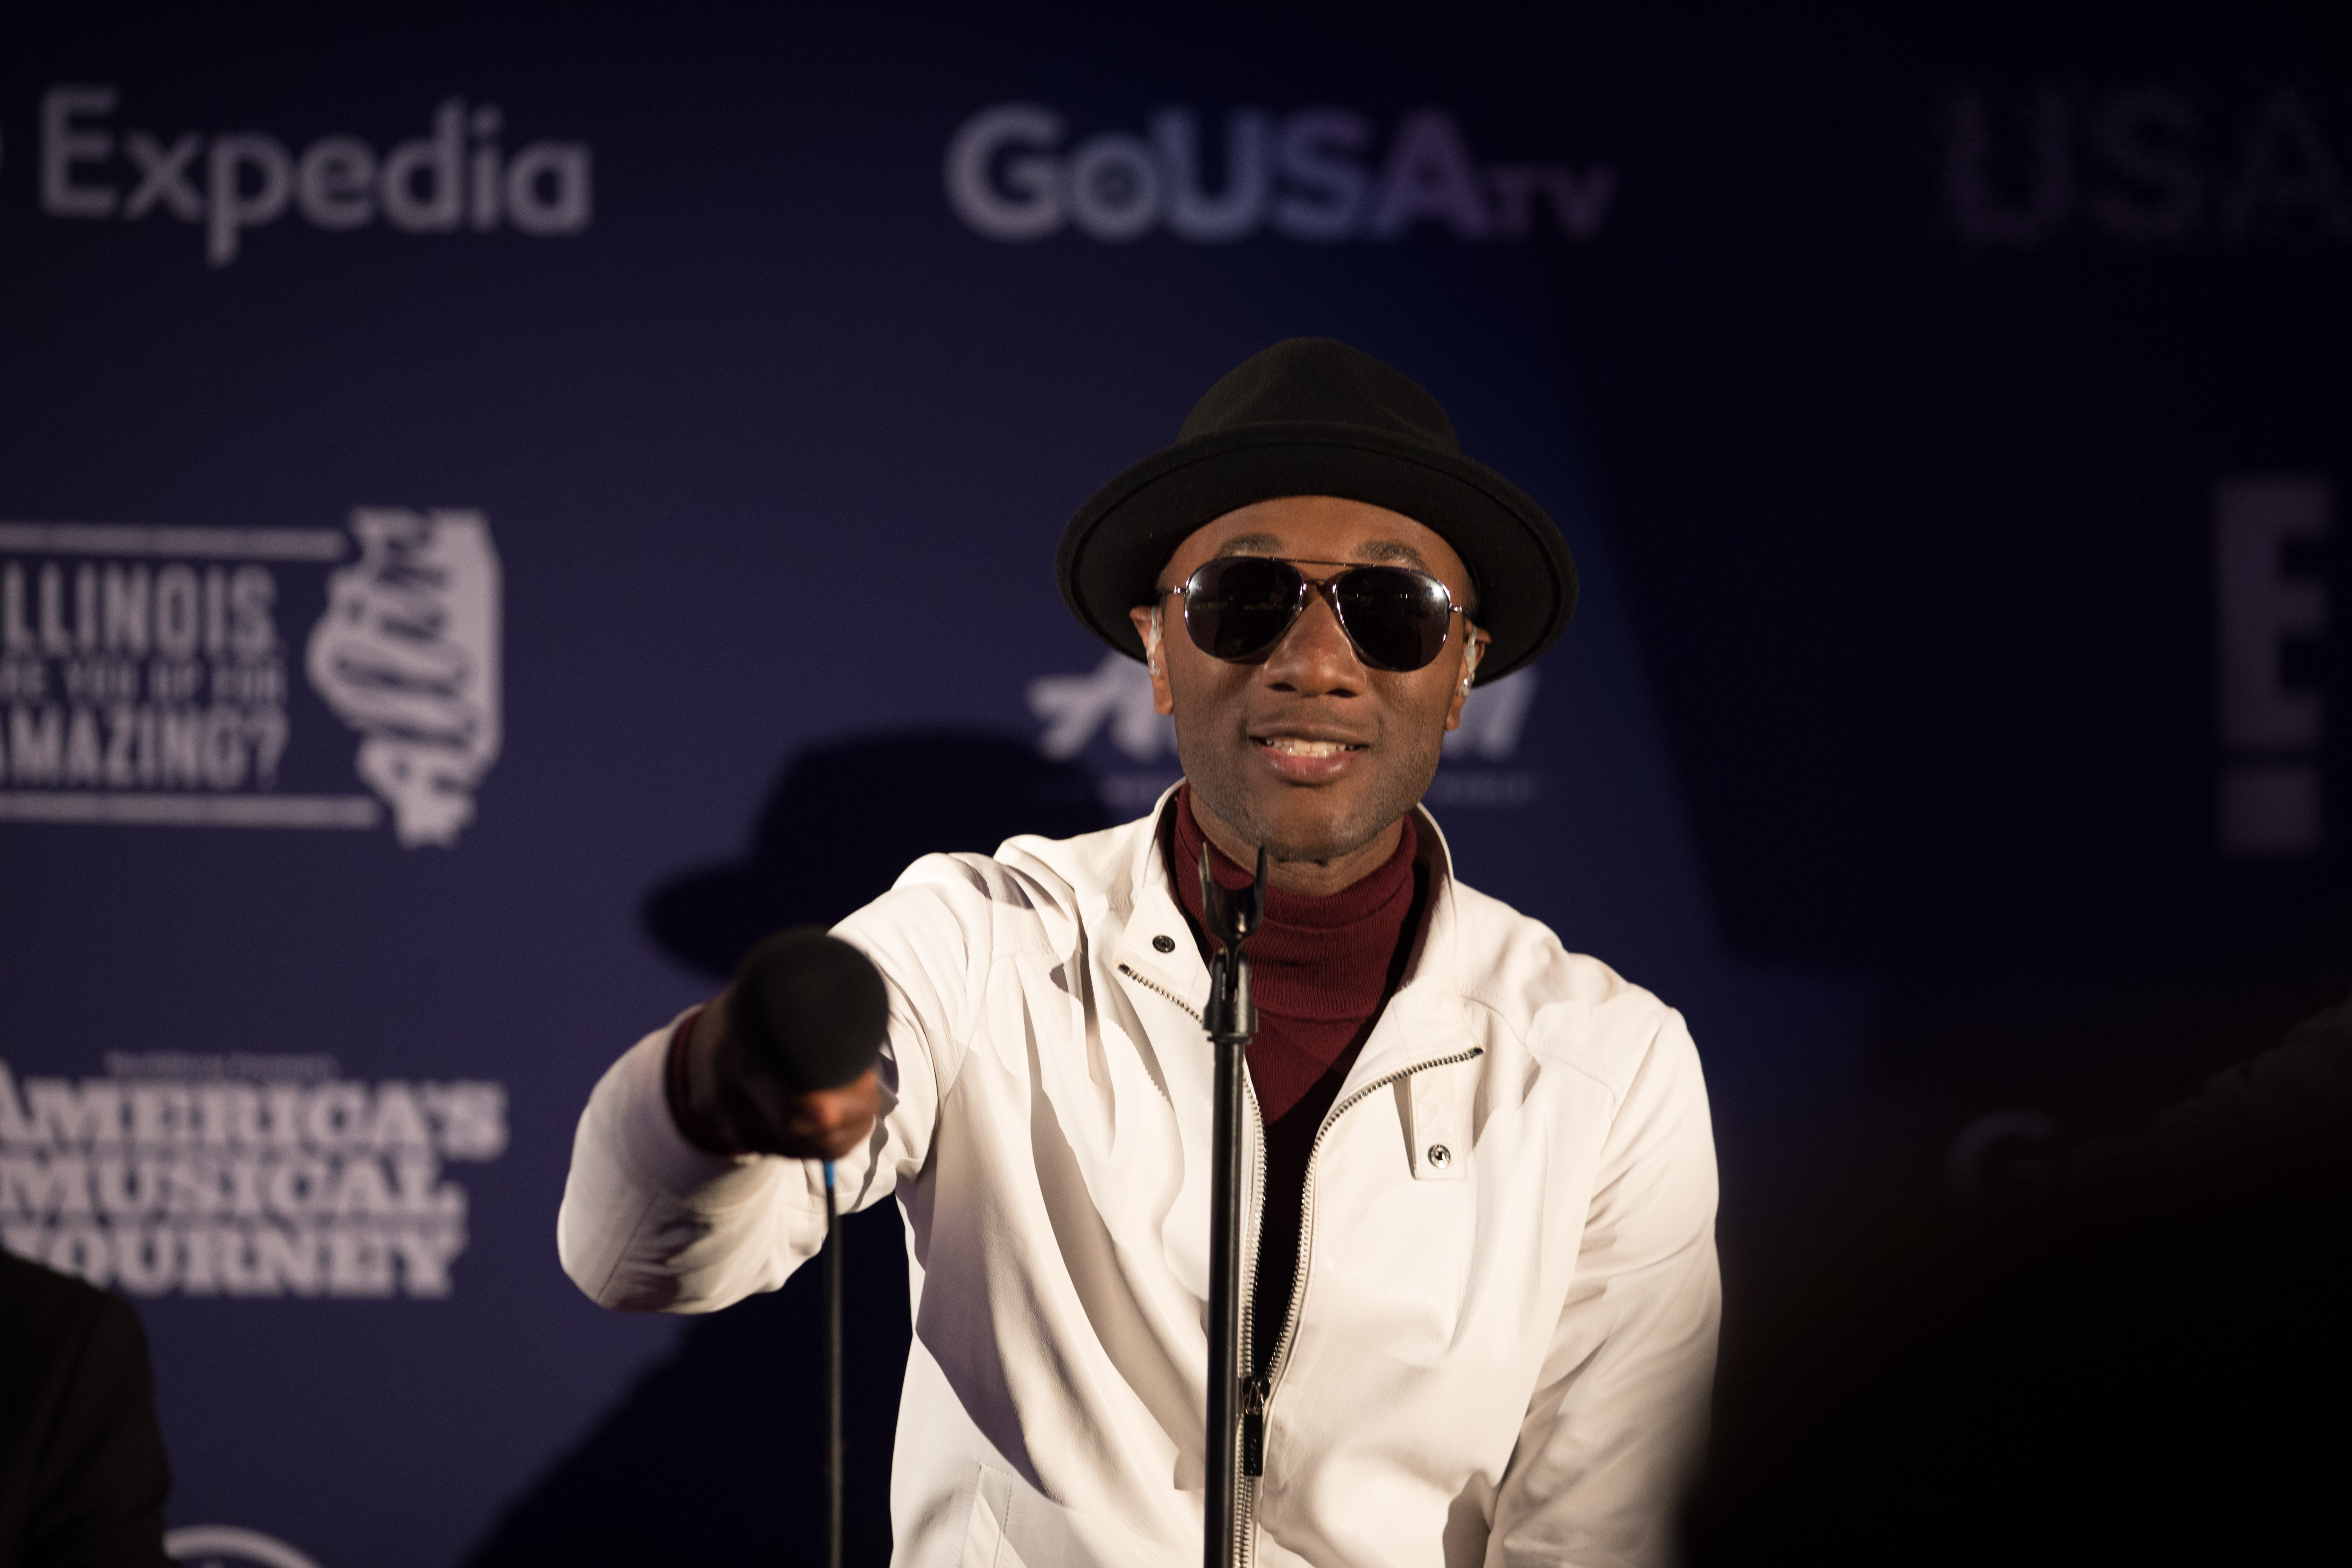 Aloe Blacc performing live at The Science Museum